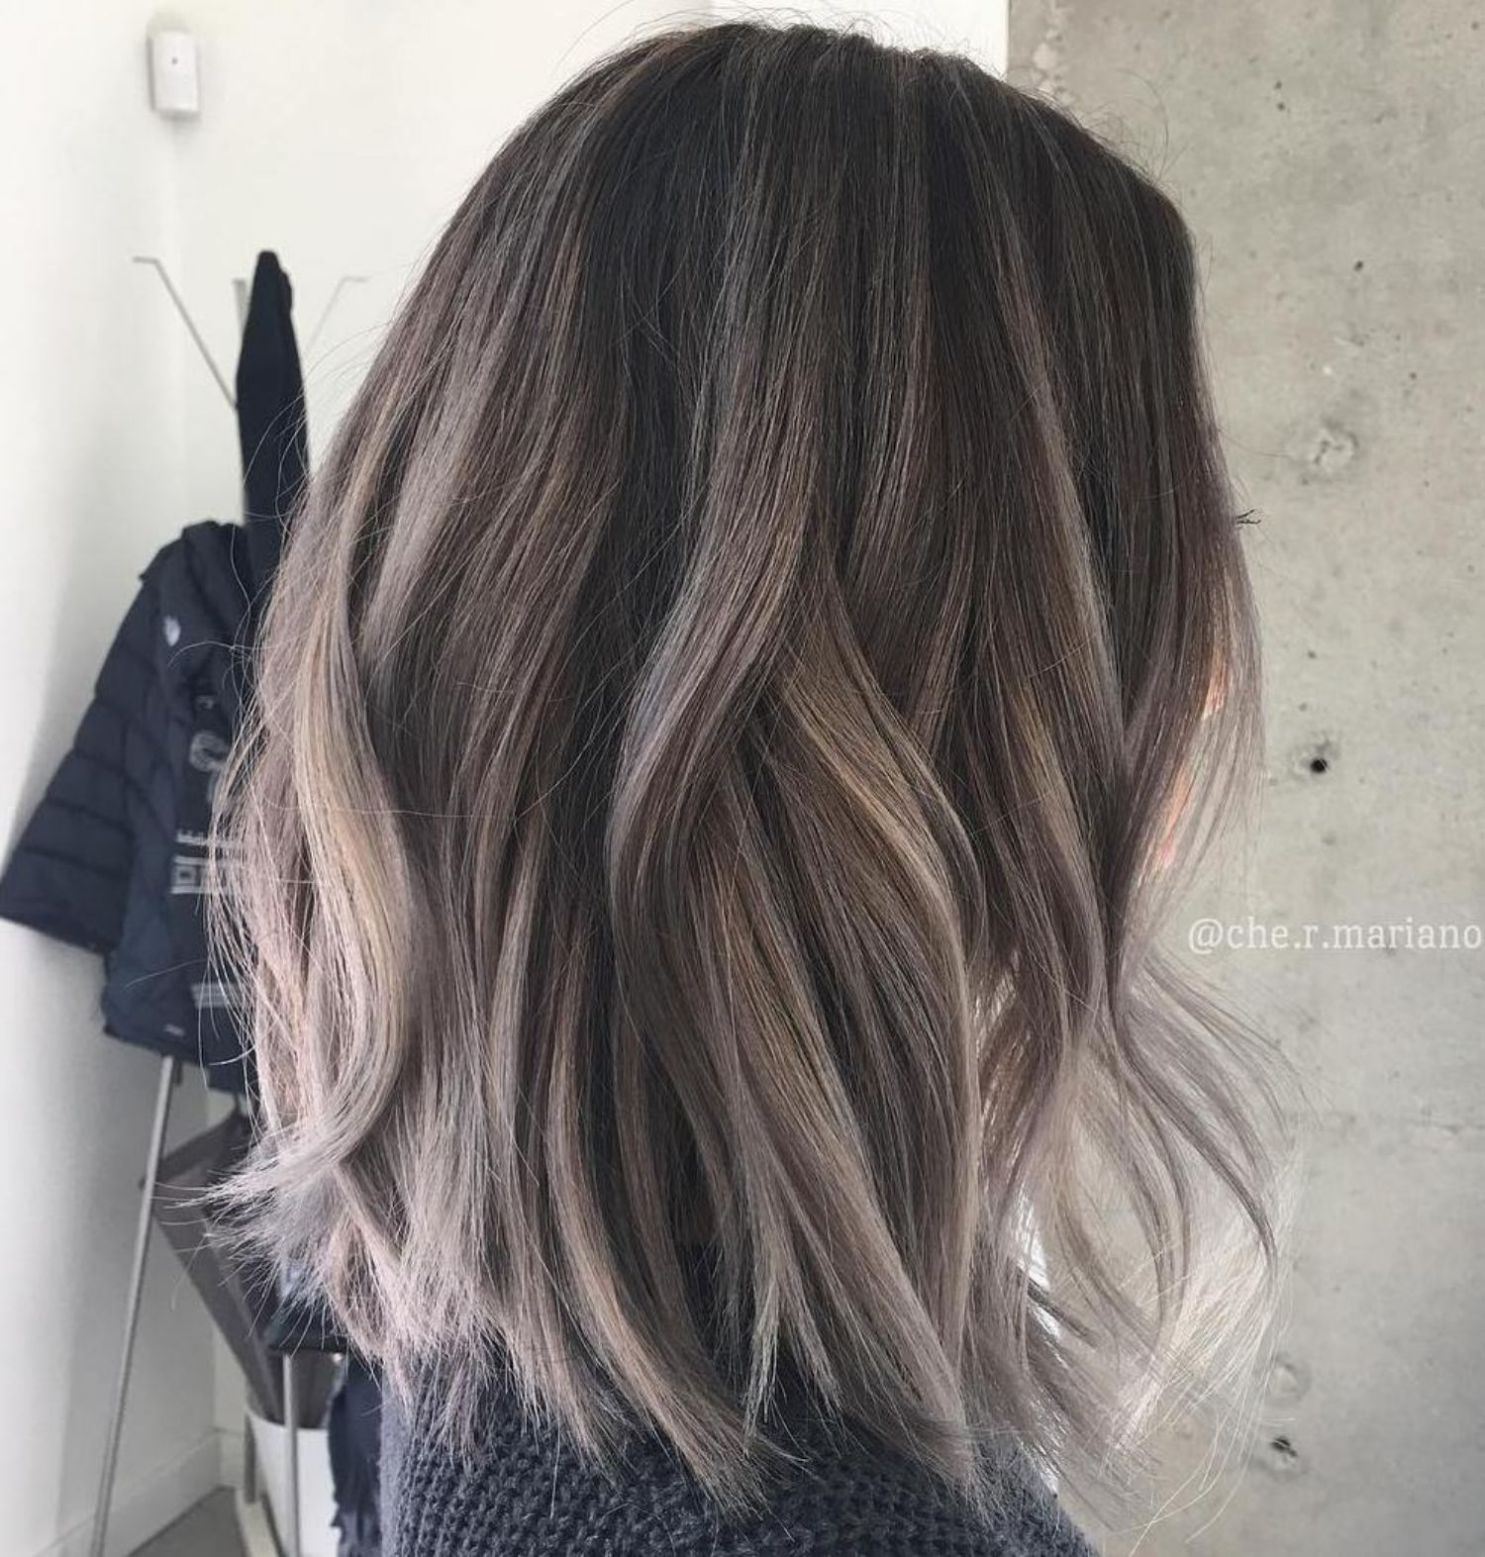 45 Shades of Grey  Silver and White Highlights for Eternal Youth in ... 619ddaf730